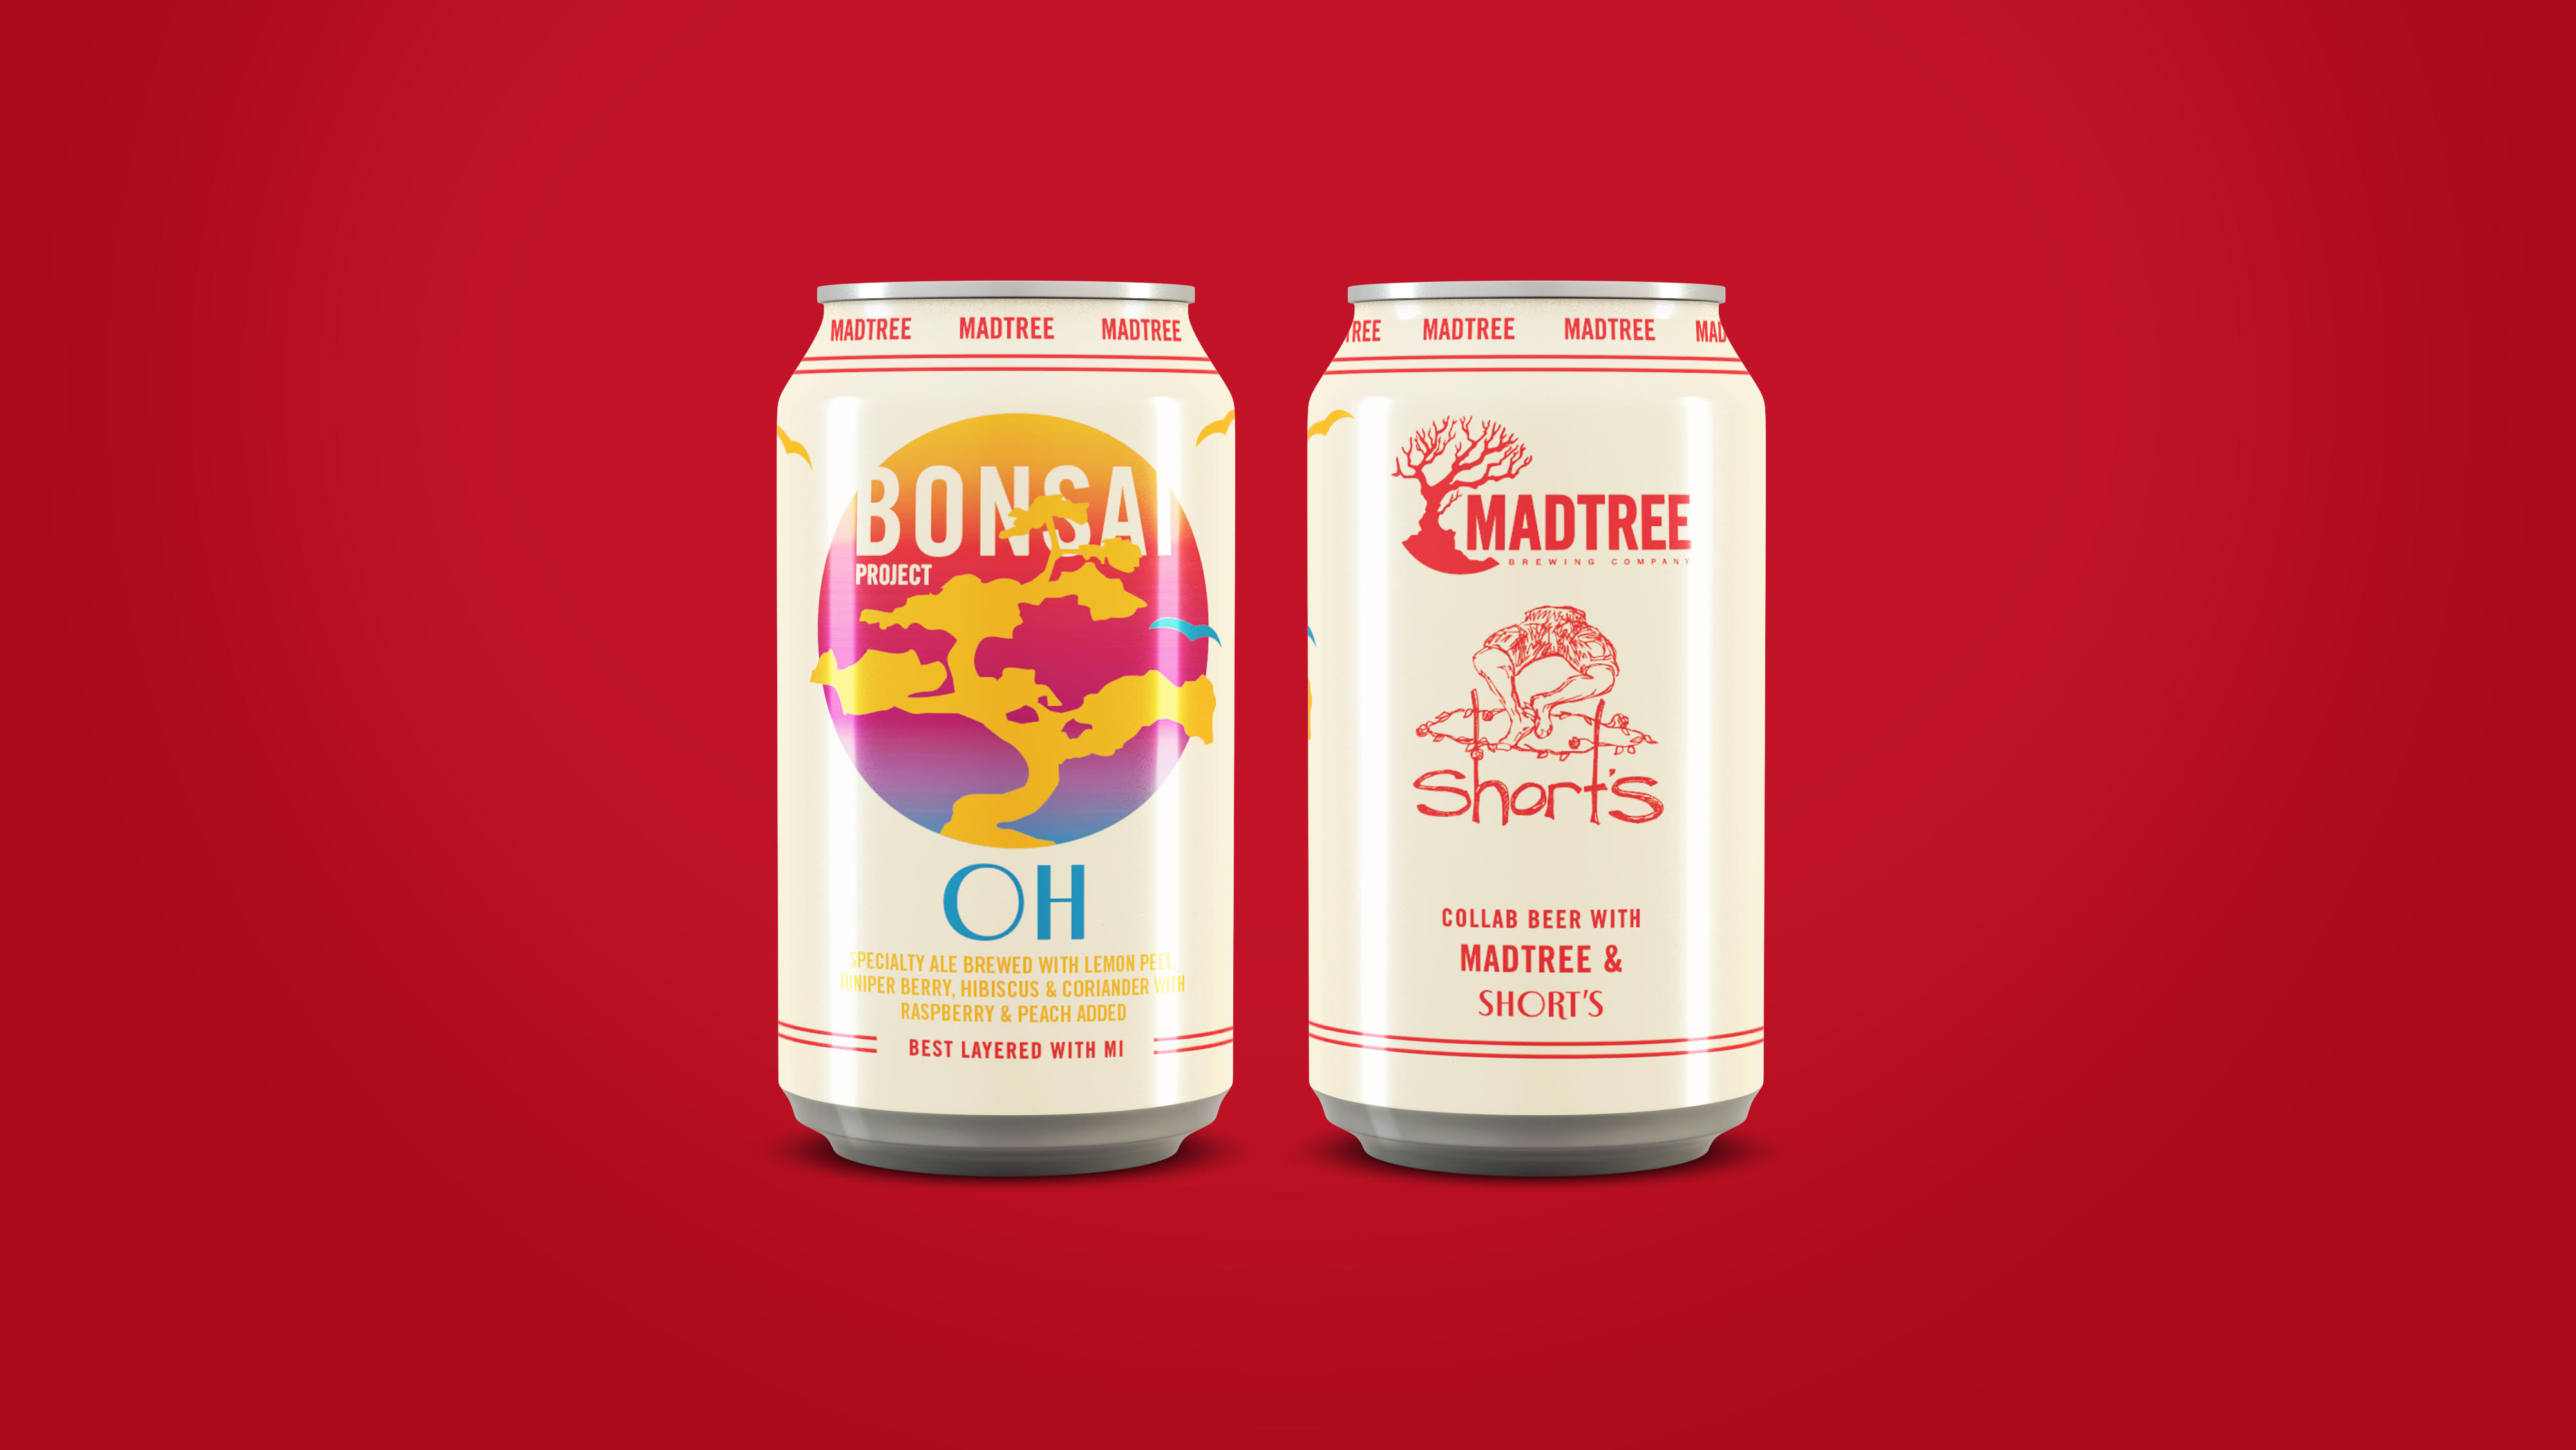 Madtree Brewing And Short S Brewing Company Collaborate On The Bonsai Project Brewbound